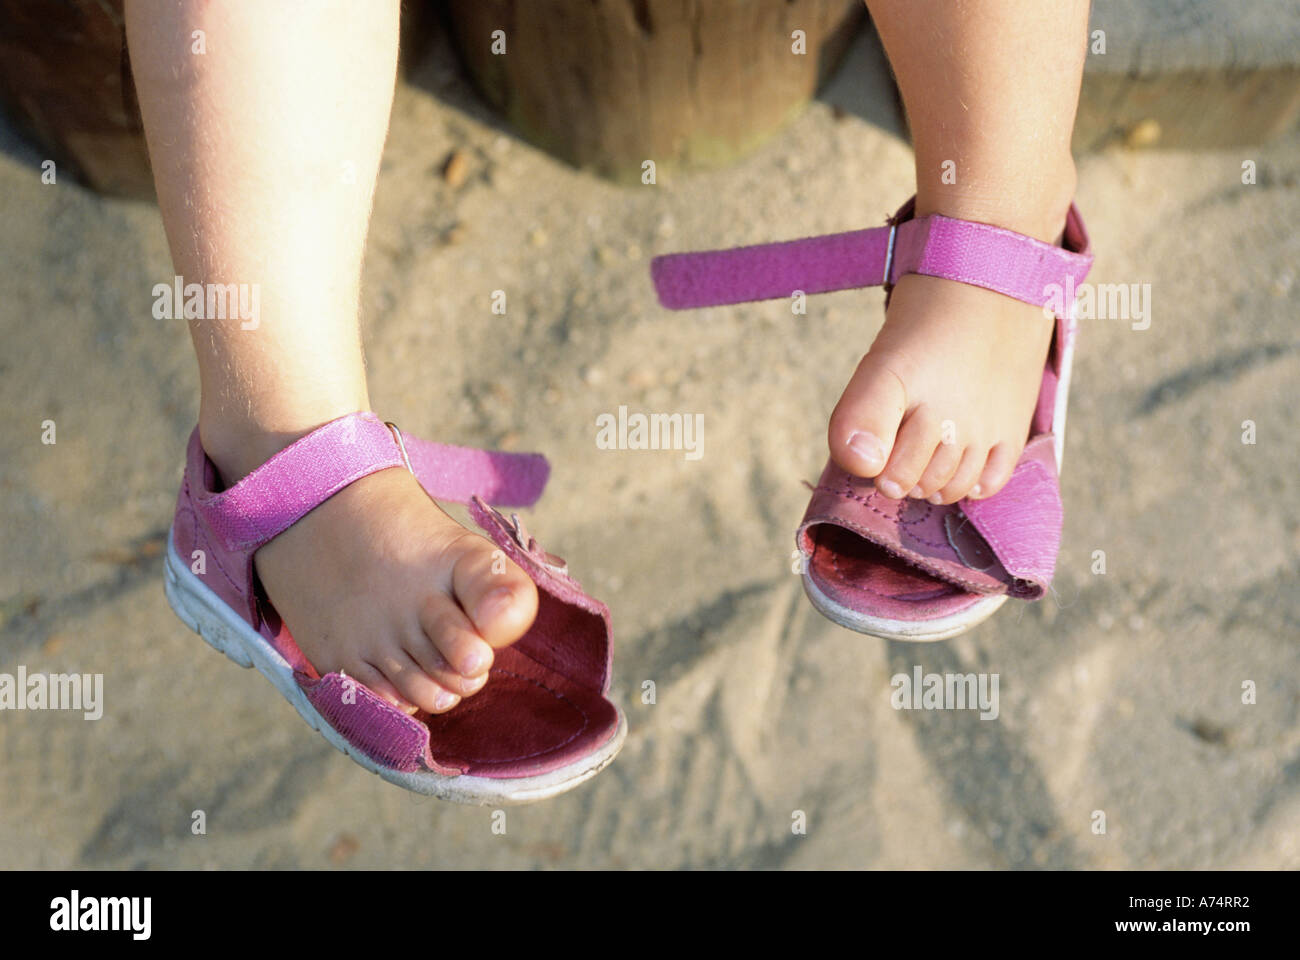 27eead33dc0afe FEET OF 5 YEAR OLD GIRL WITH SANDALS FALLING OFF Stock Photo ...